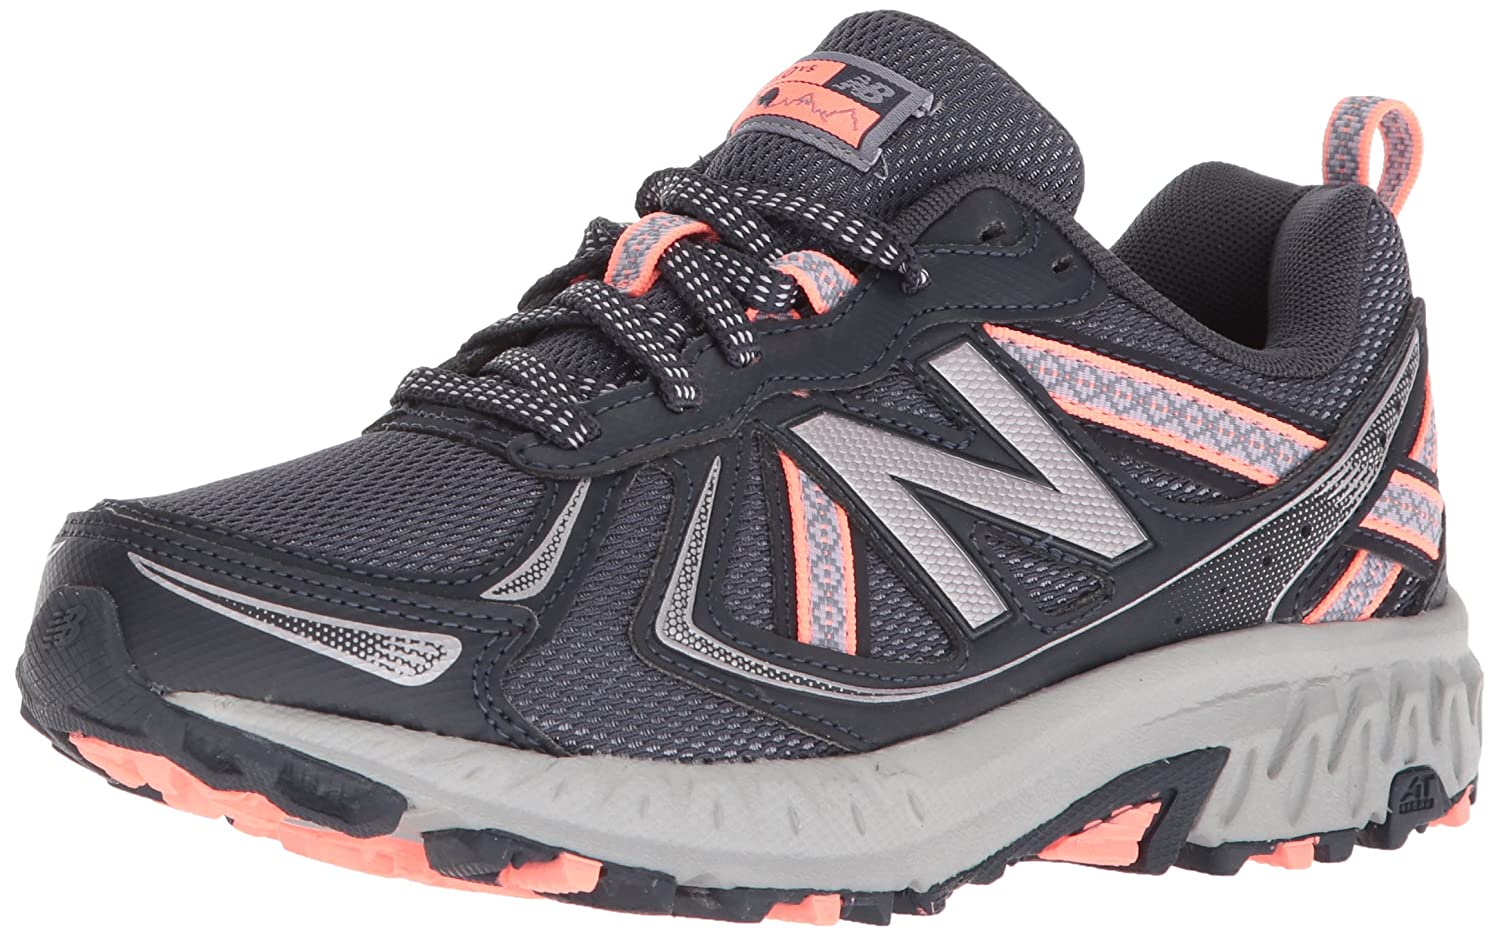 New Balance Women's WT410v5 Cushioning Trail Running Shoe B074VH1266 10.5 B(M) US|Thunder